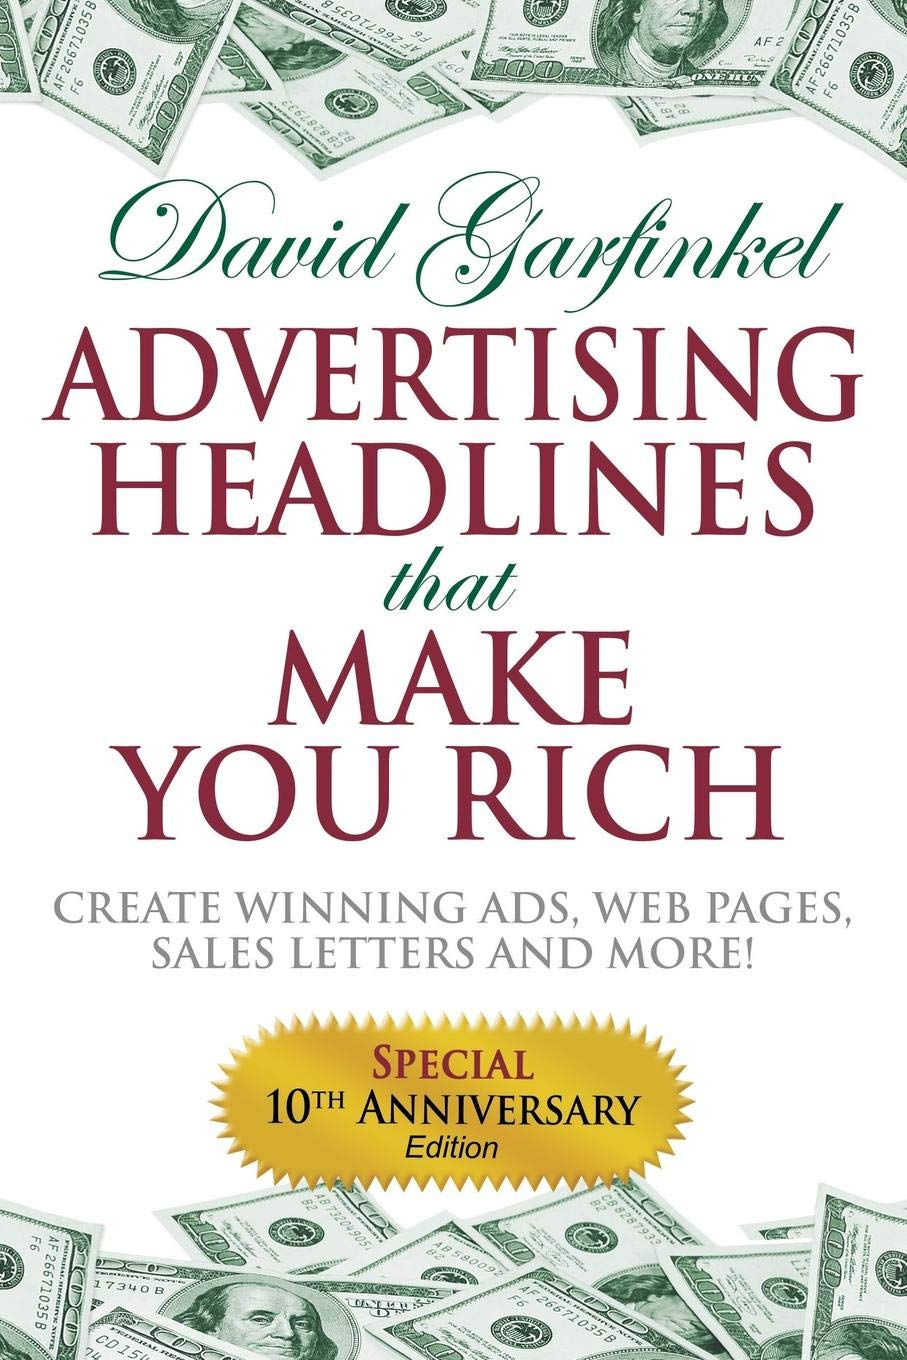 Advertising Headlines That Make You Rich: Create Winning Ads, Web Pages, Sales Letters and More PDF